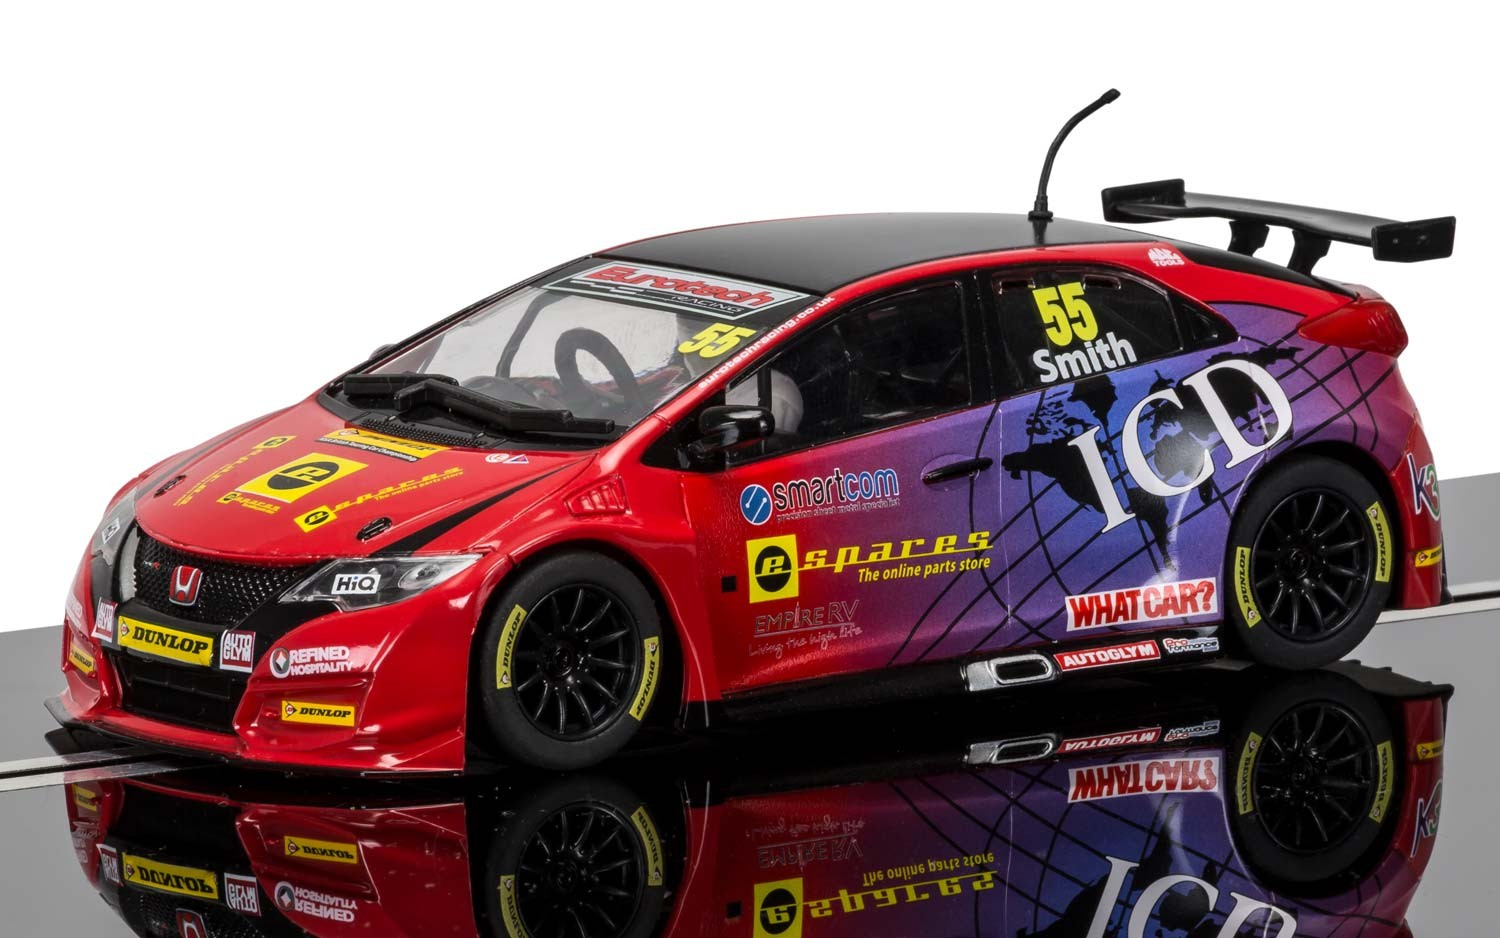 BTCC Honda Civic Type R, pilote Jeff Smith référence C3860